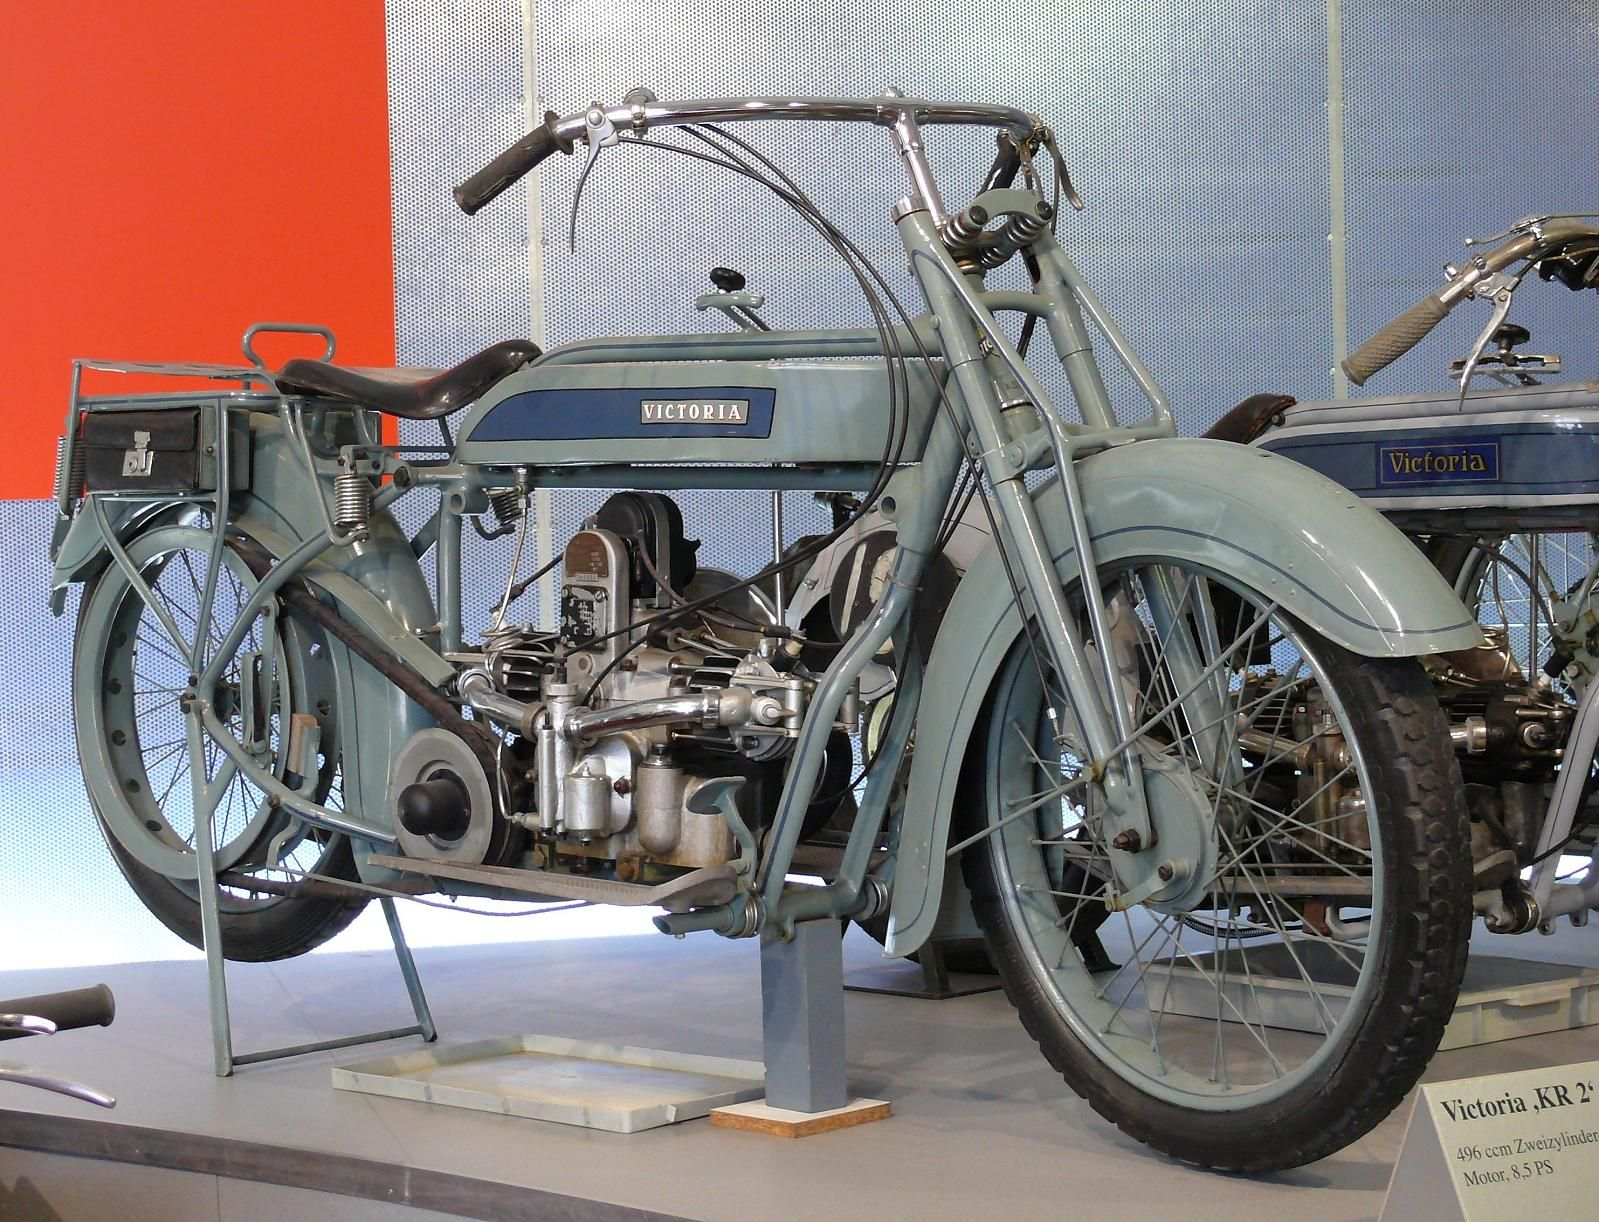 Victoria Motorcycle Germany